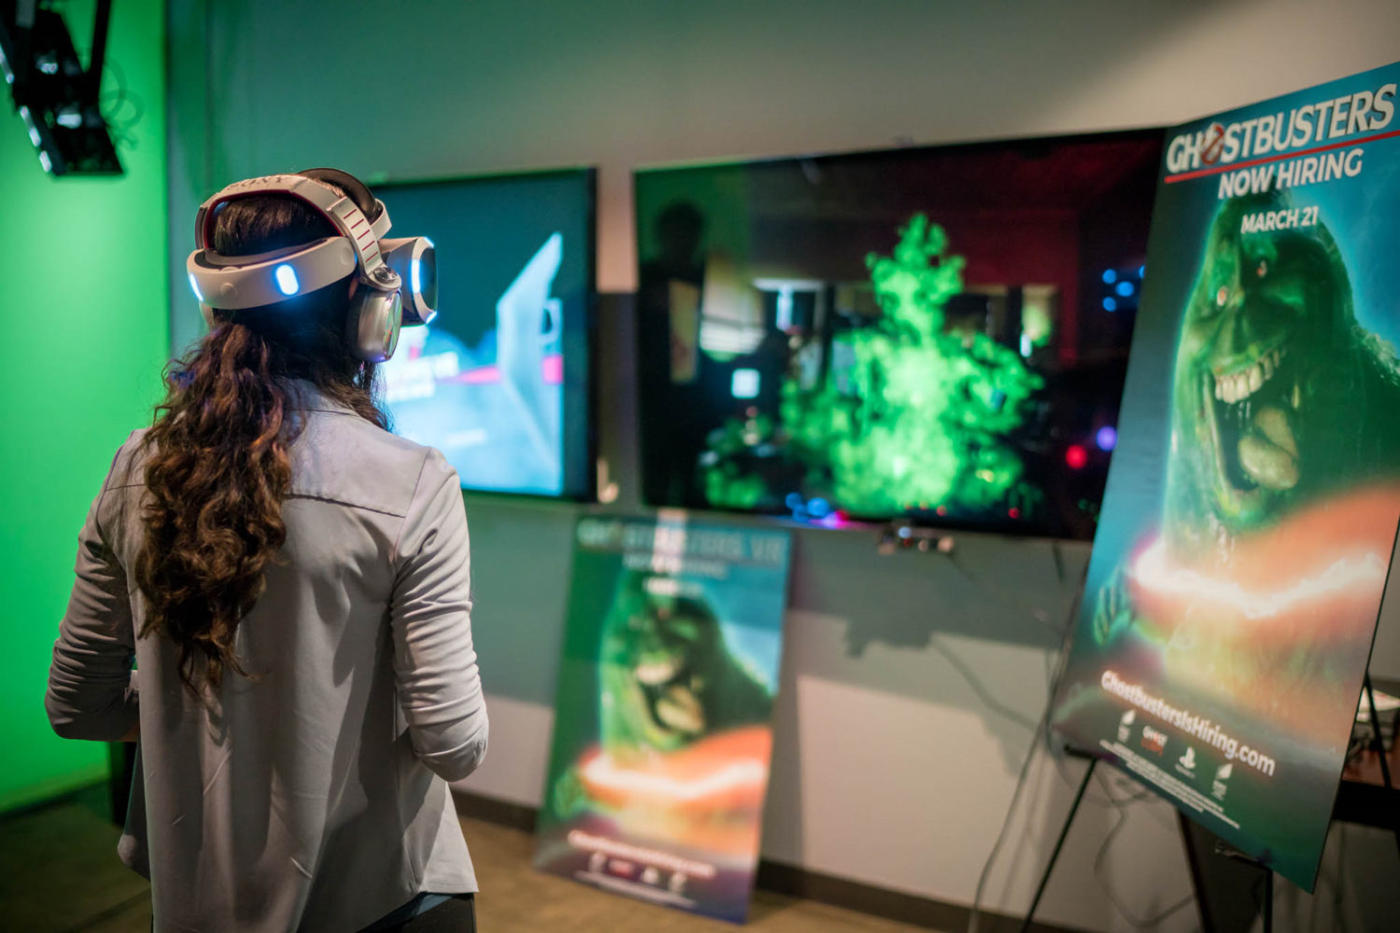 Ghostbusters Vr Now Hiring